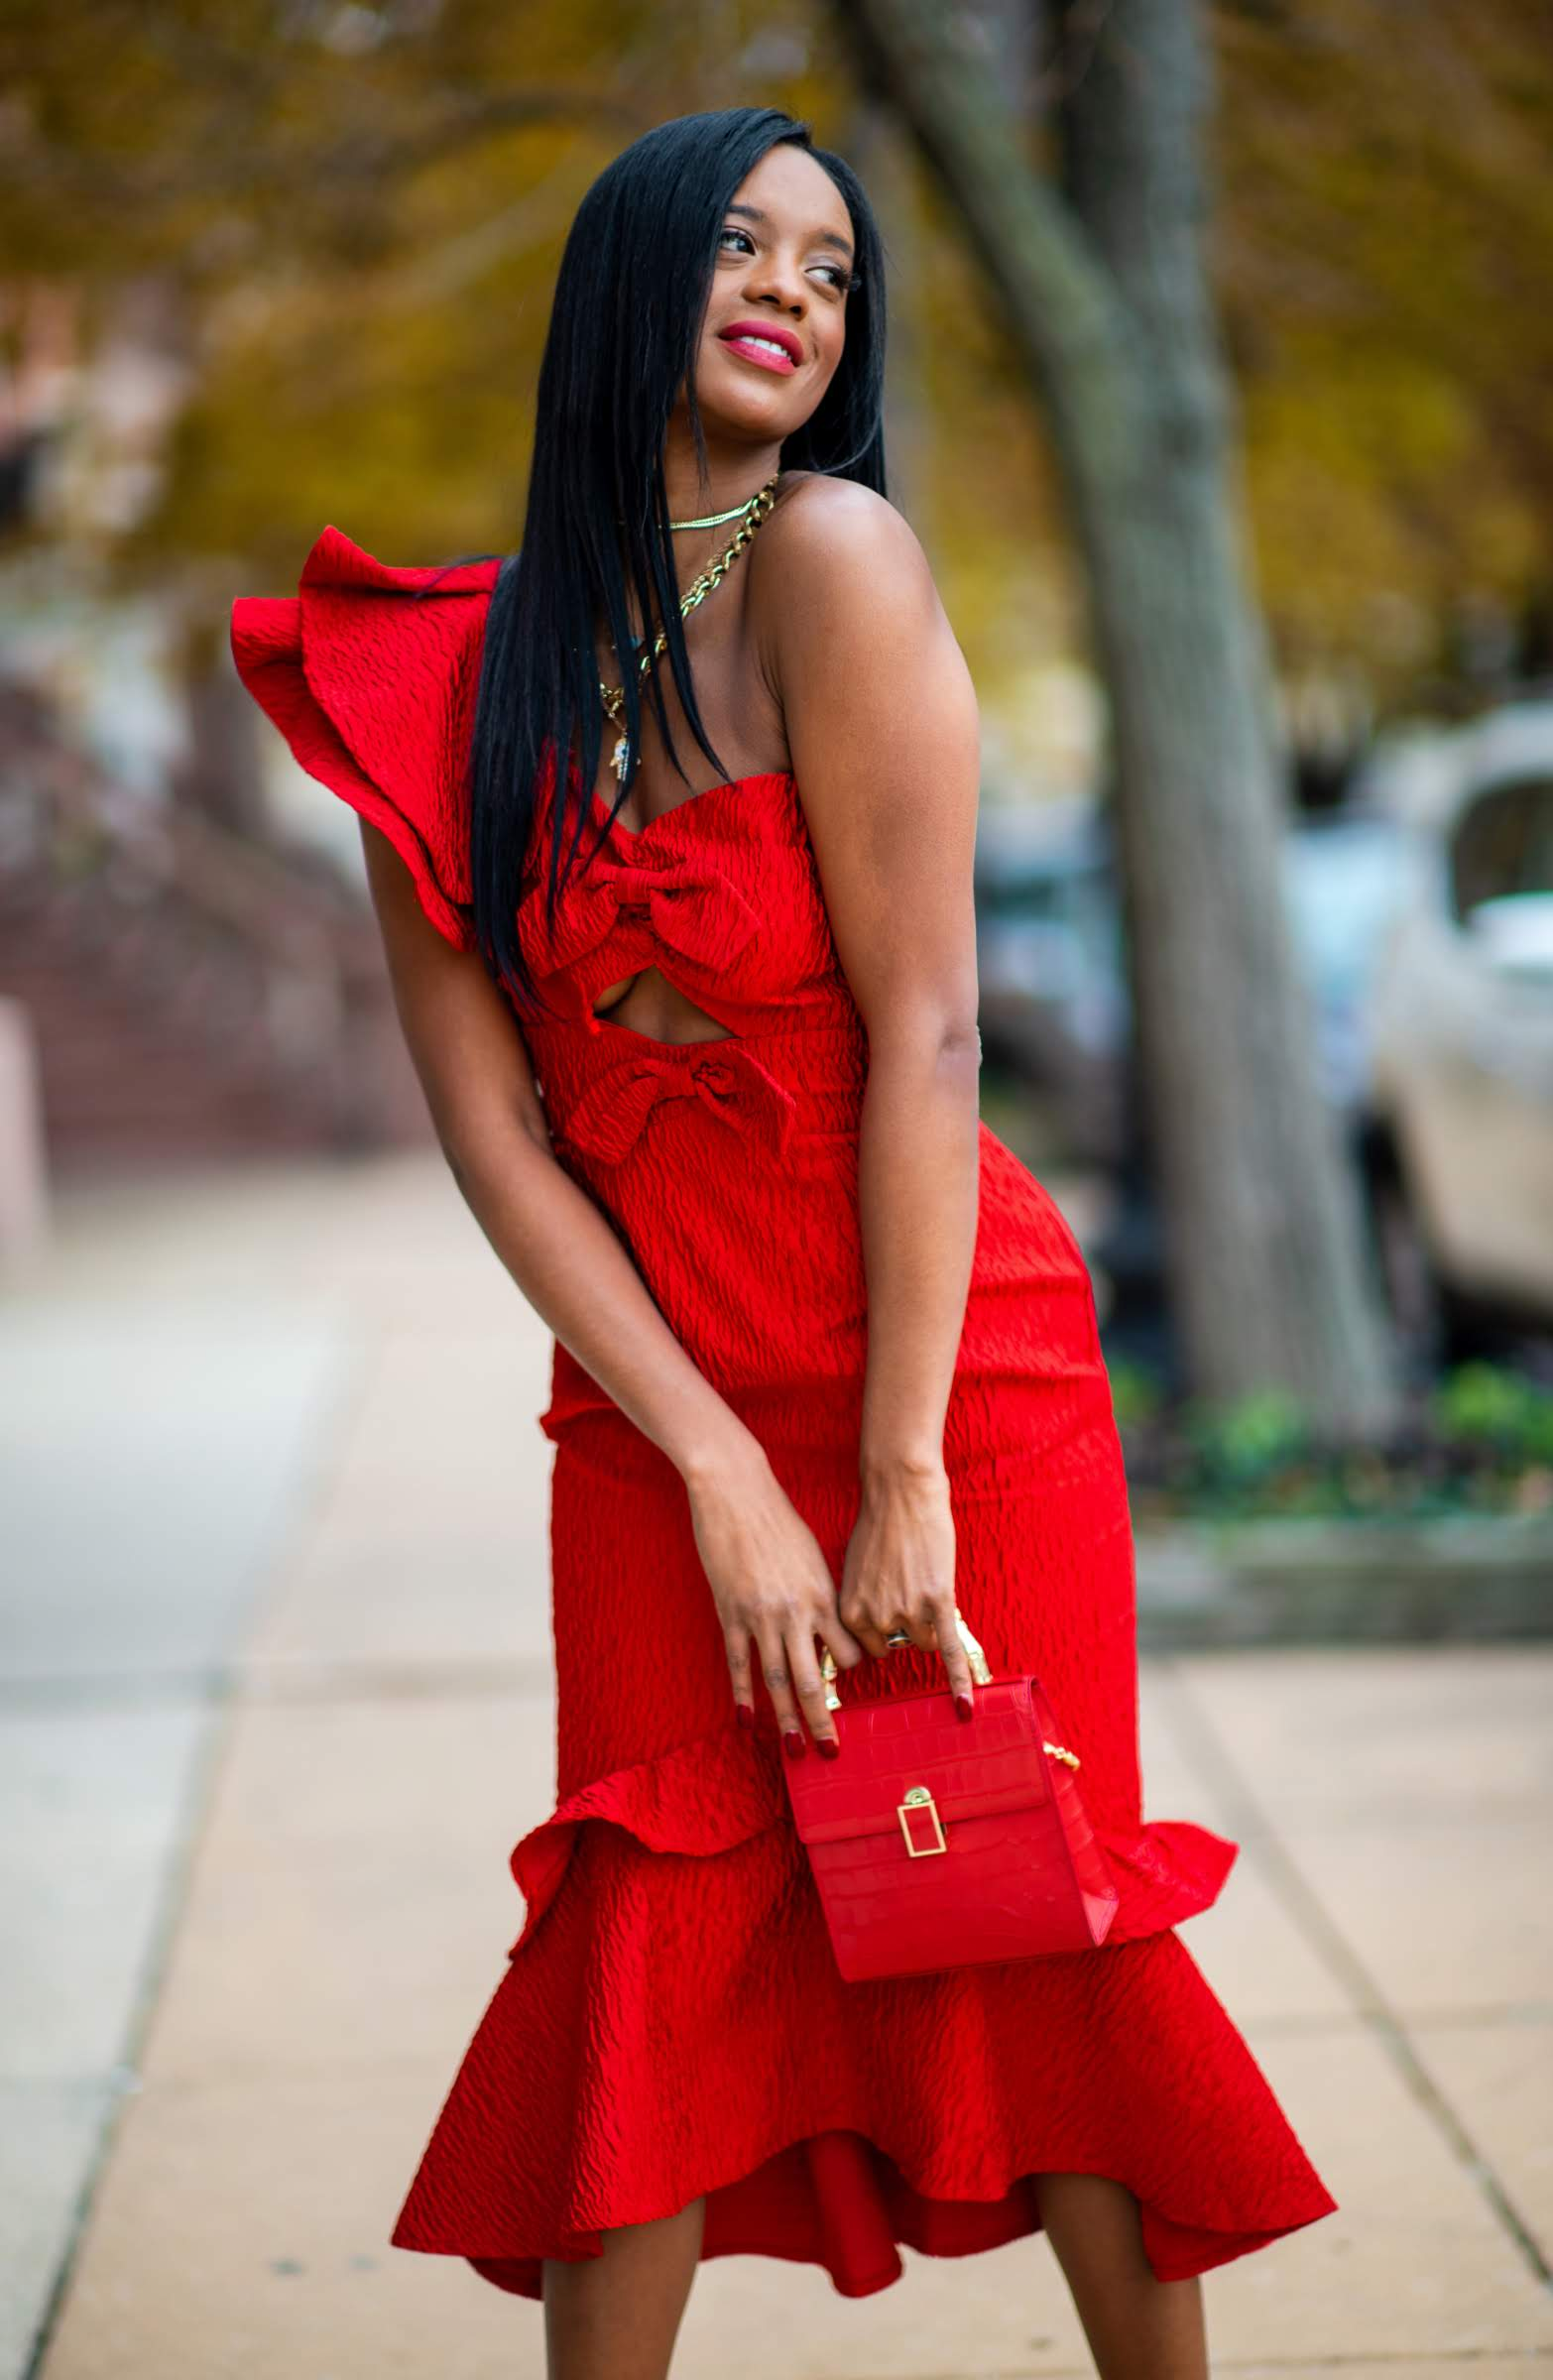 Valentine's Day Dress Code woman wearing midi length red dress and red purse outside and smiling